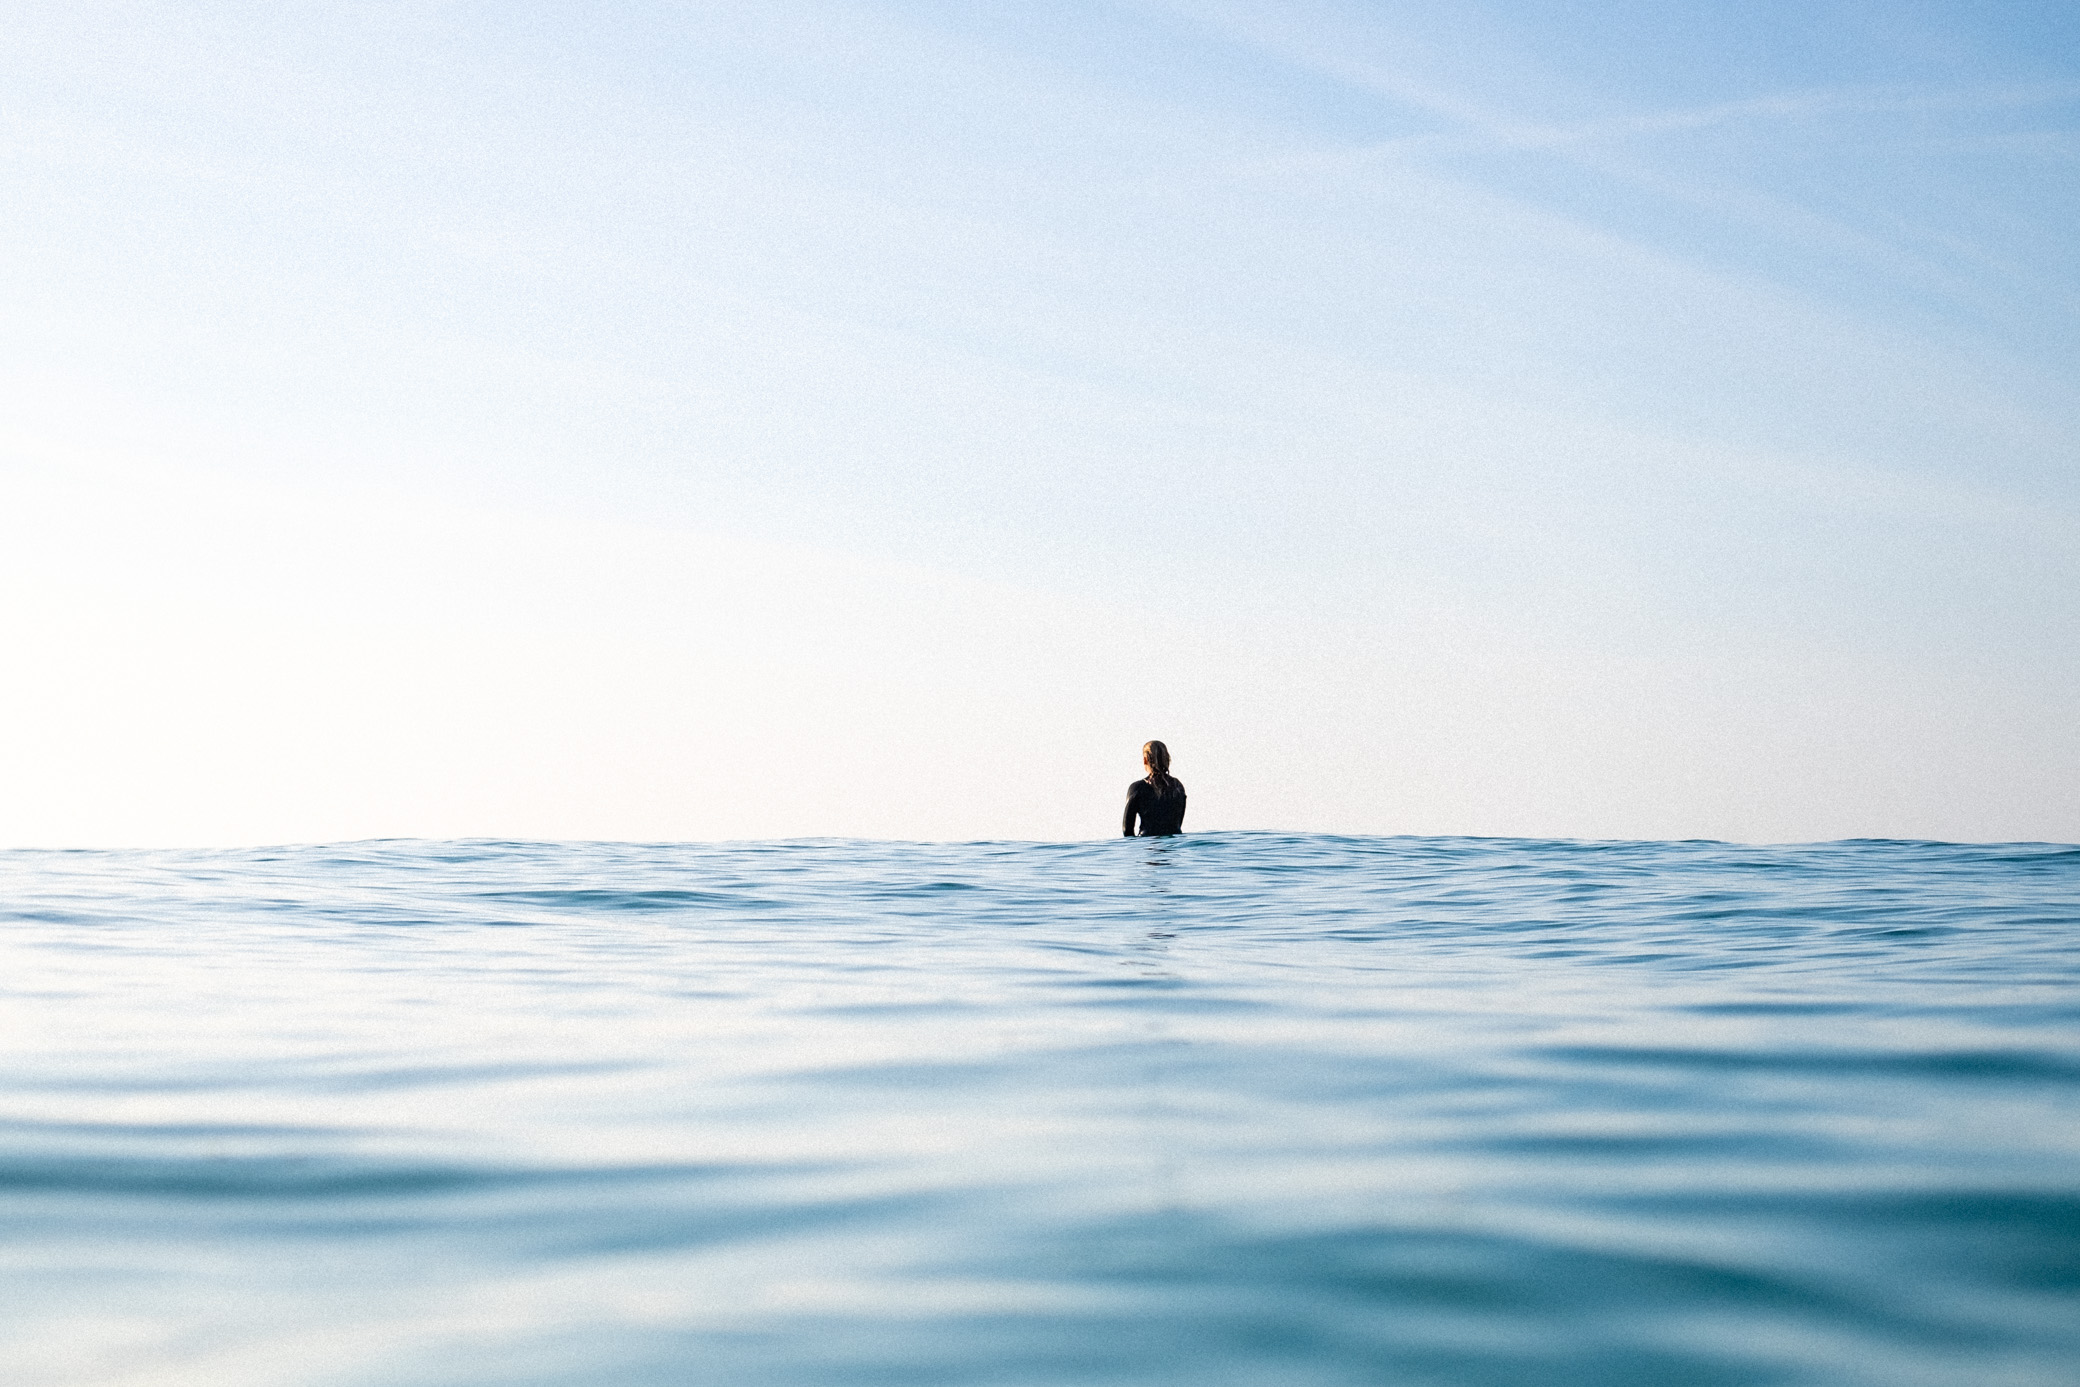 Waiting for waves, lone surfer girl sat in the sea